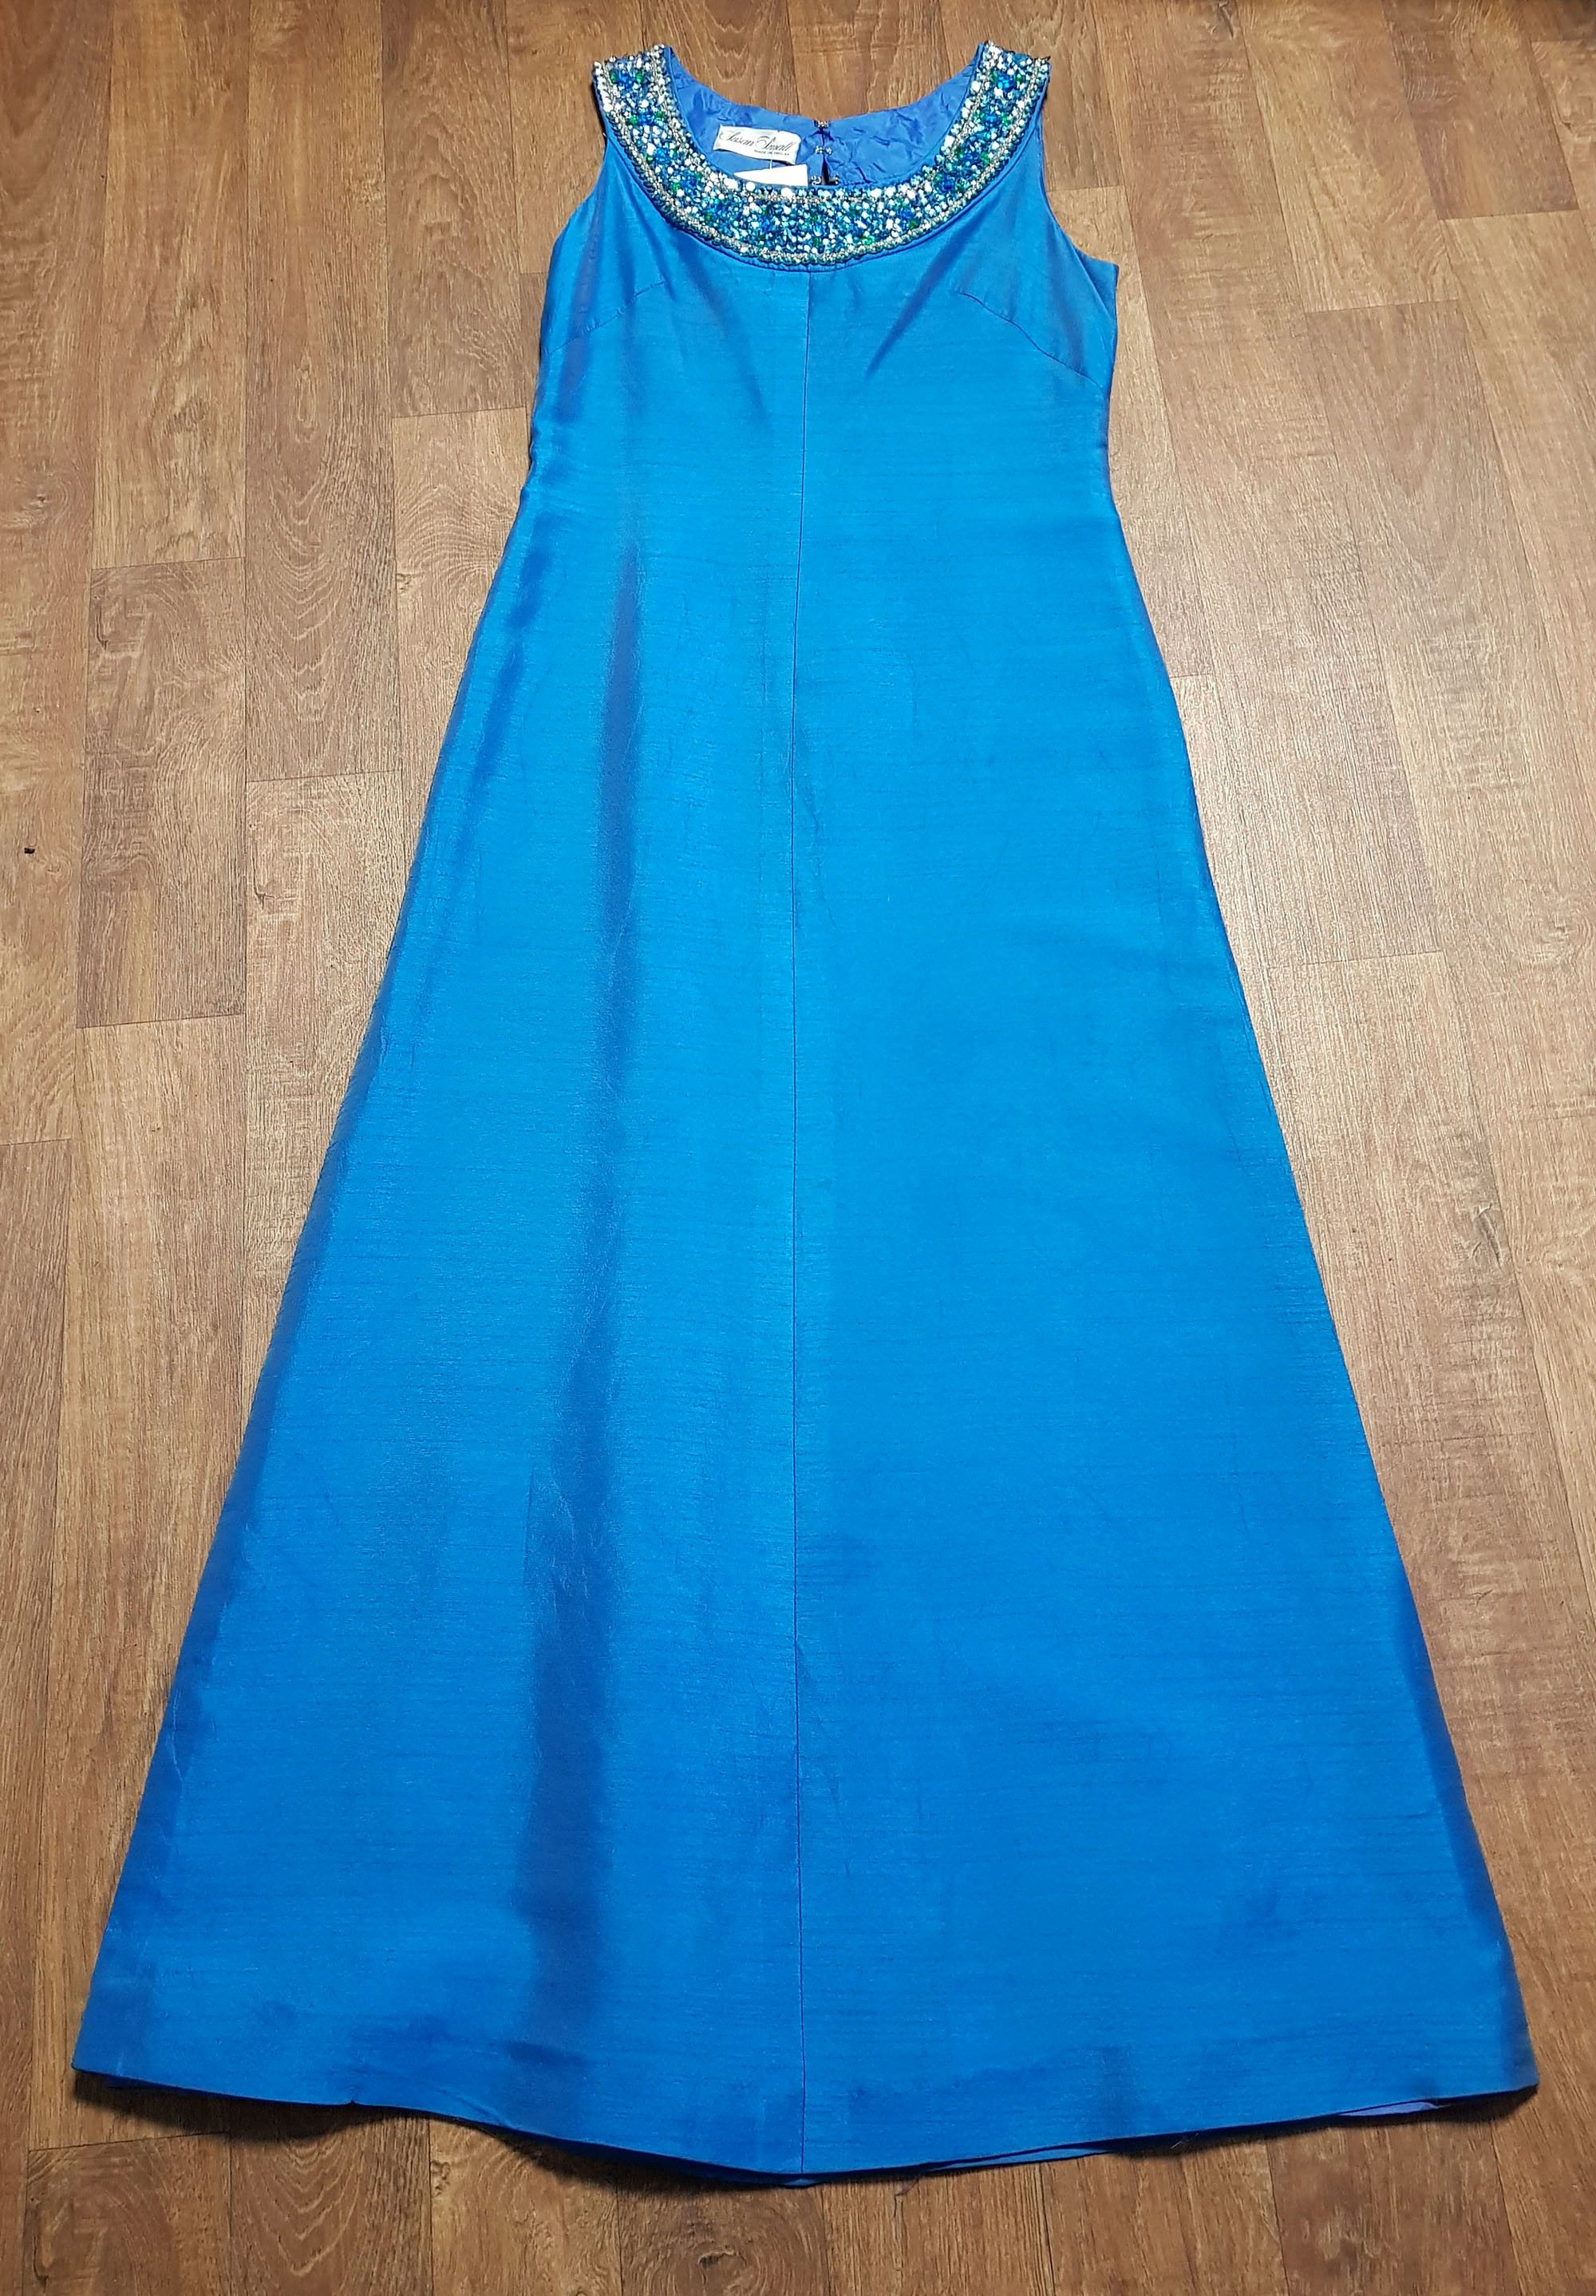 1960s Vintage Teal Silk Susan Small Evening Dress UK Size 12